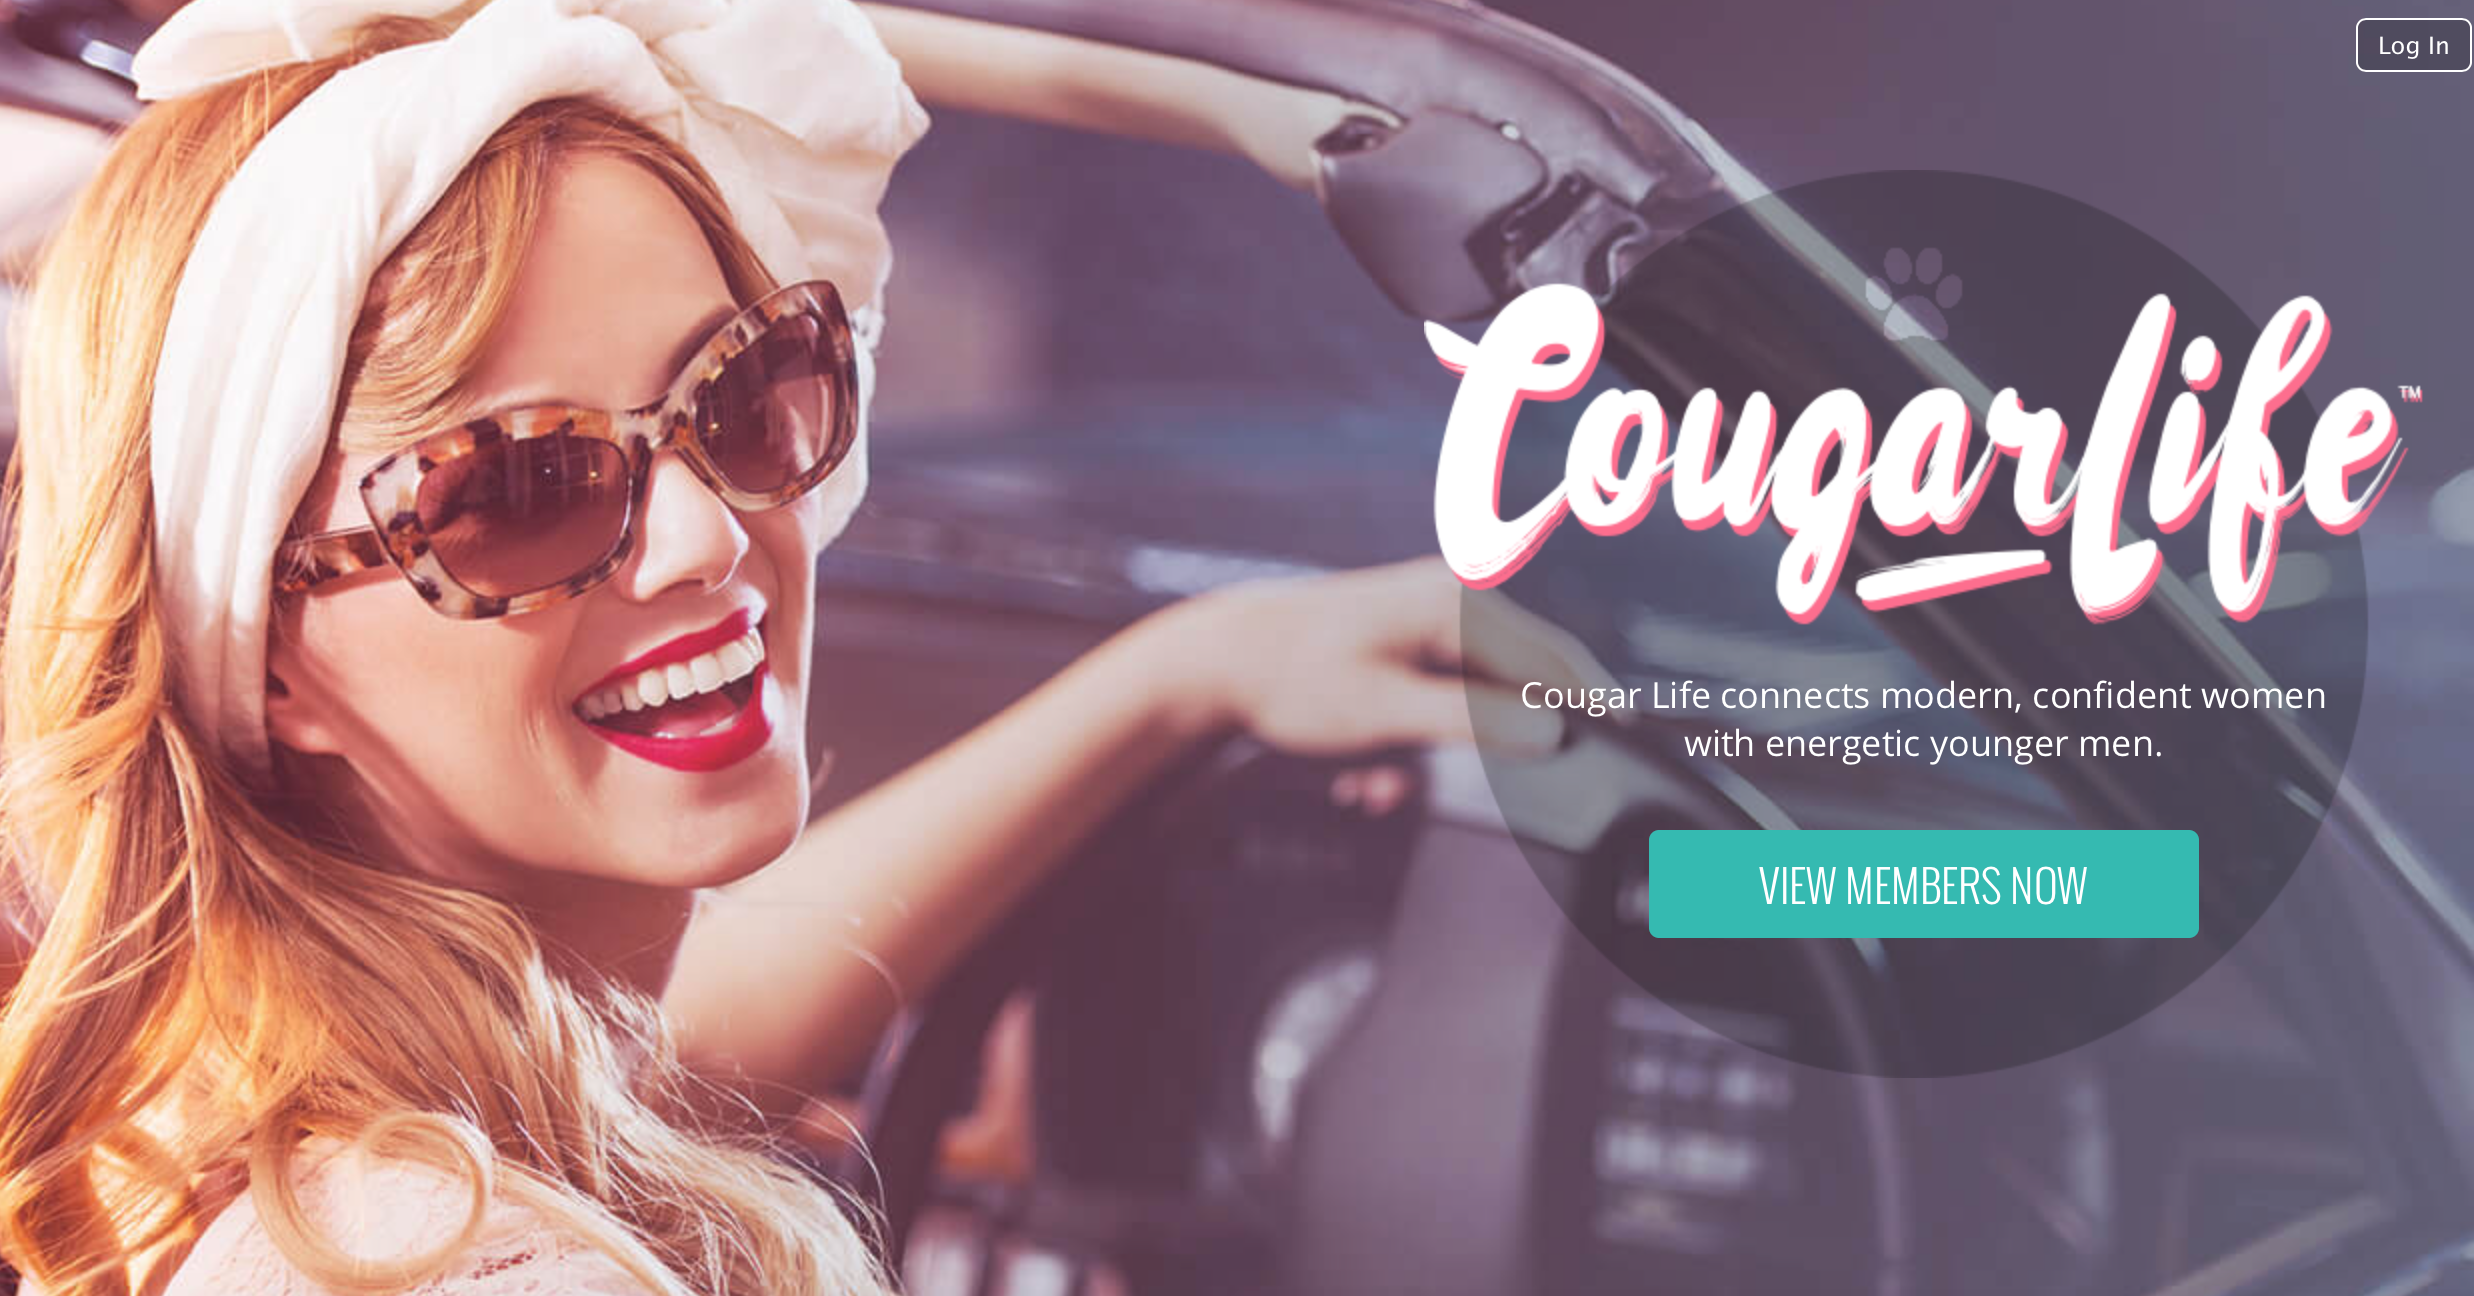 ozone cougars dating site 04112010  here are the 5 best cougar dating sites normally, relationships involving older women charming younger men are considered faux pas however, with the.